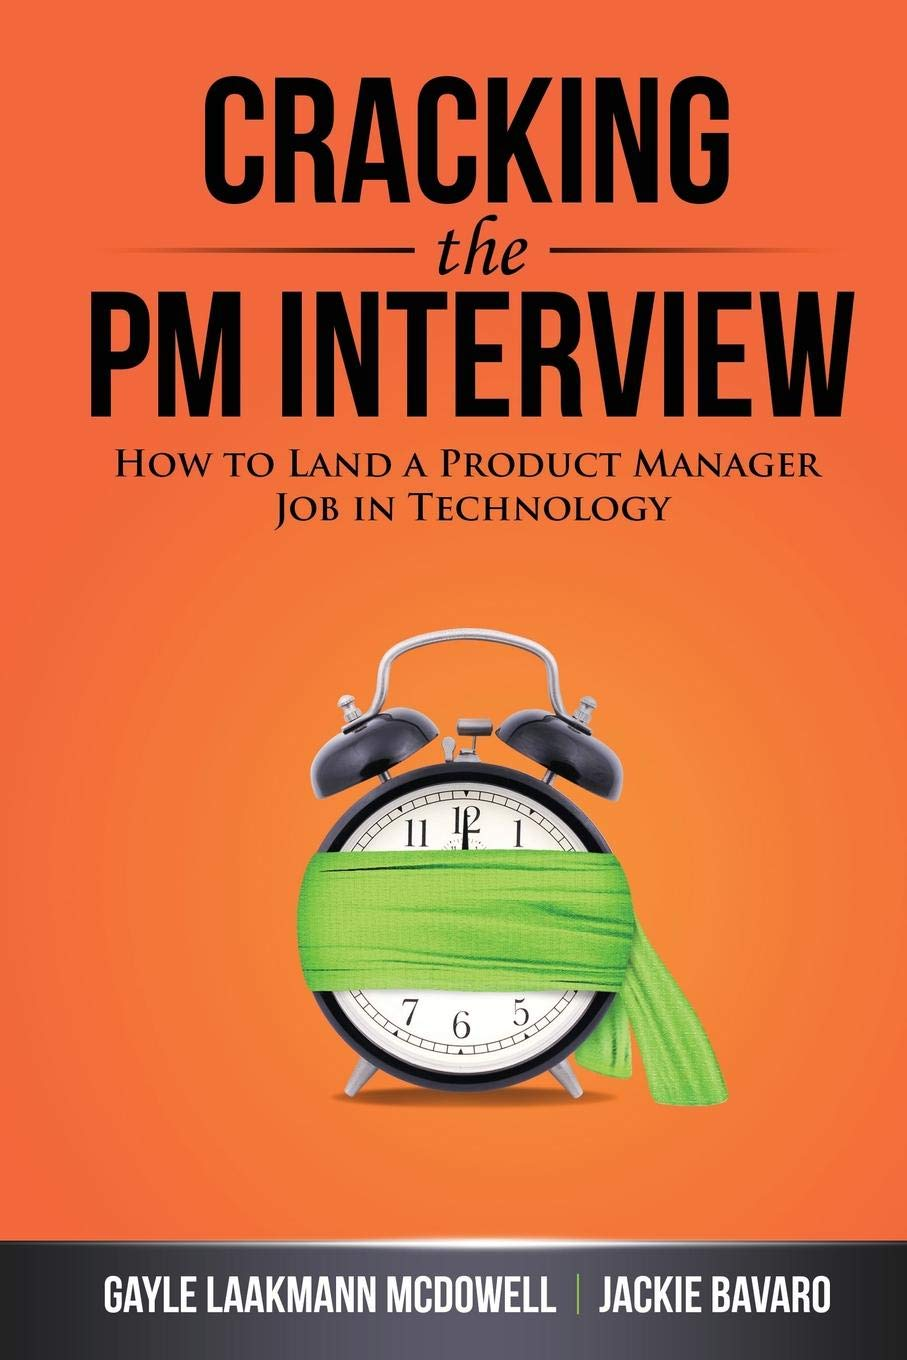 Cracking the PM Interview: How to Land a Product Manager Job in Technology by Jackie Bavaro Gayle McDowell